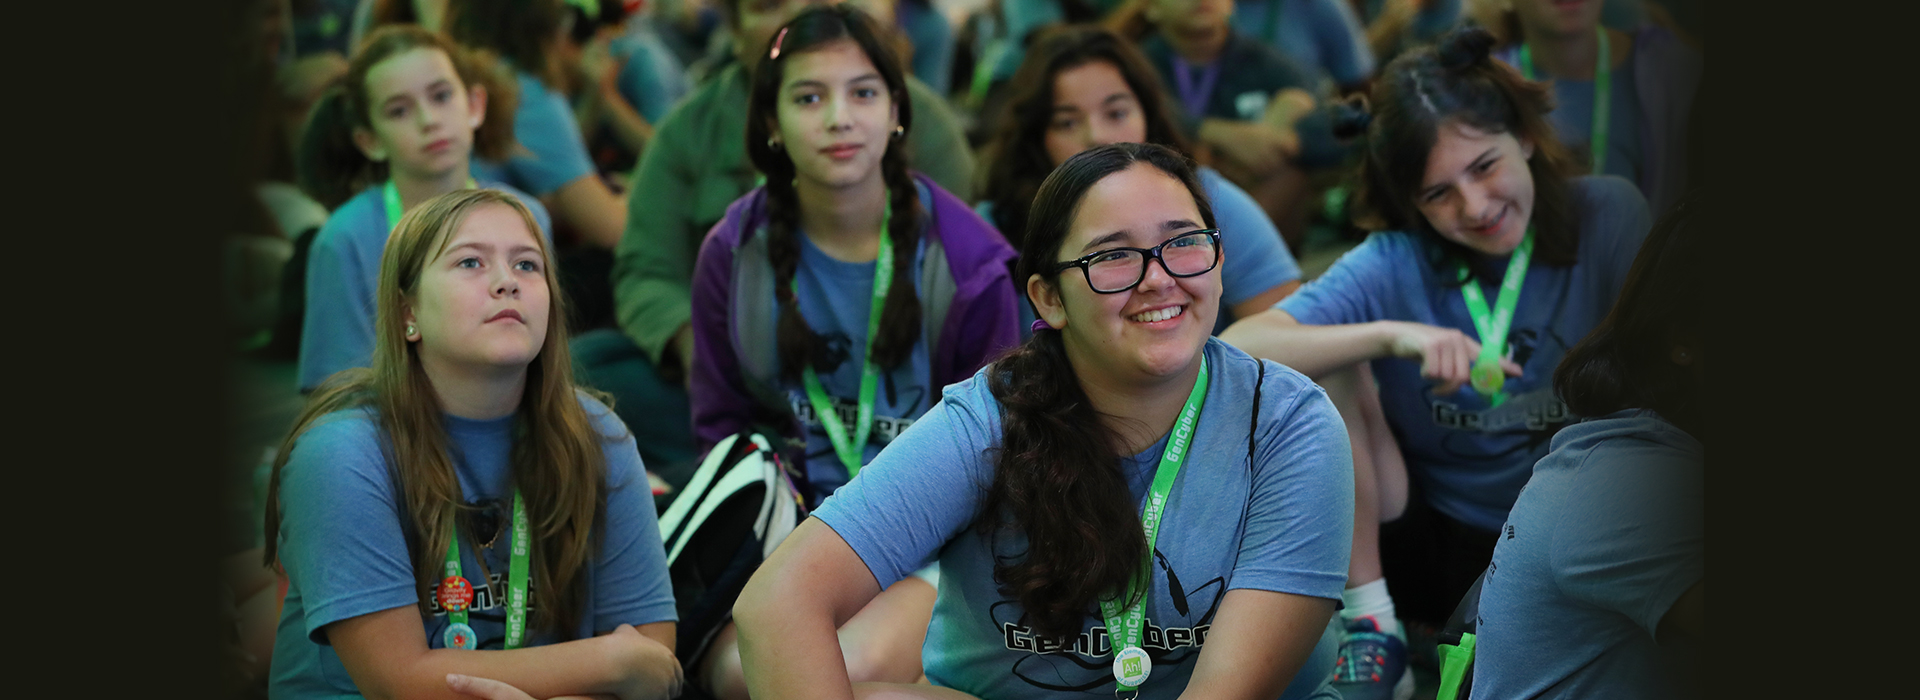 The GenCyber camp is funded jointly by the National Security Agency and the National Science Foundation.